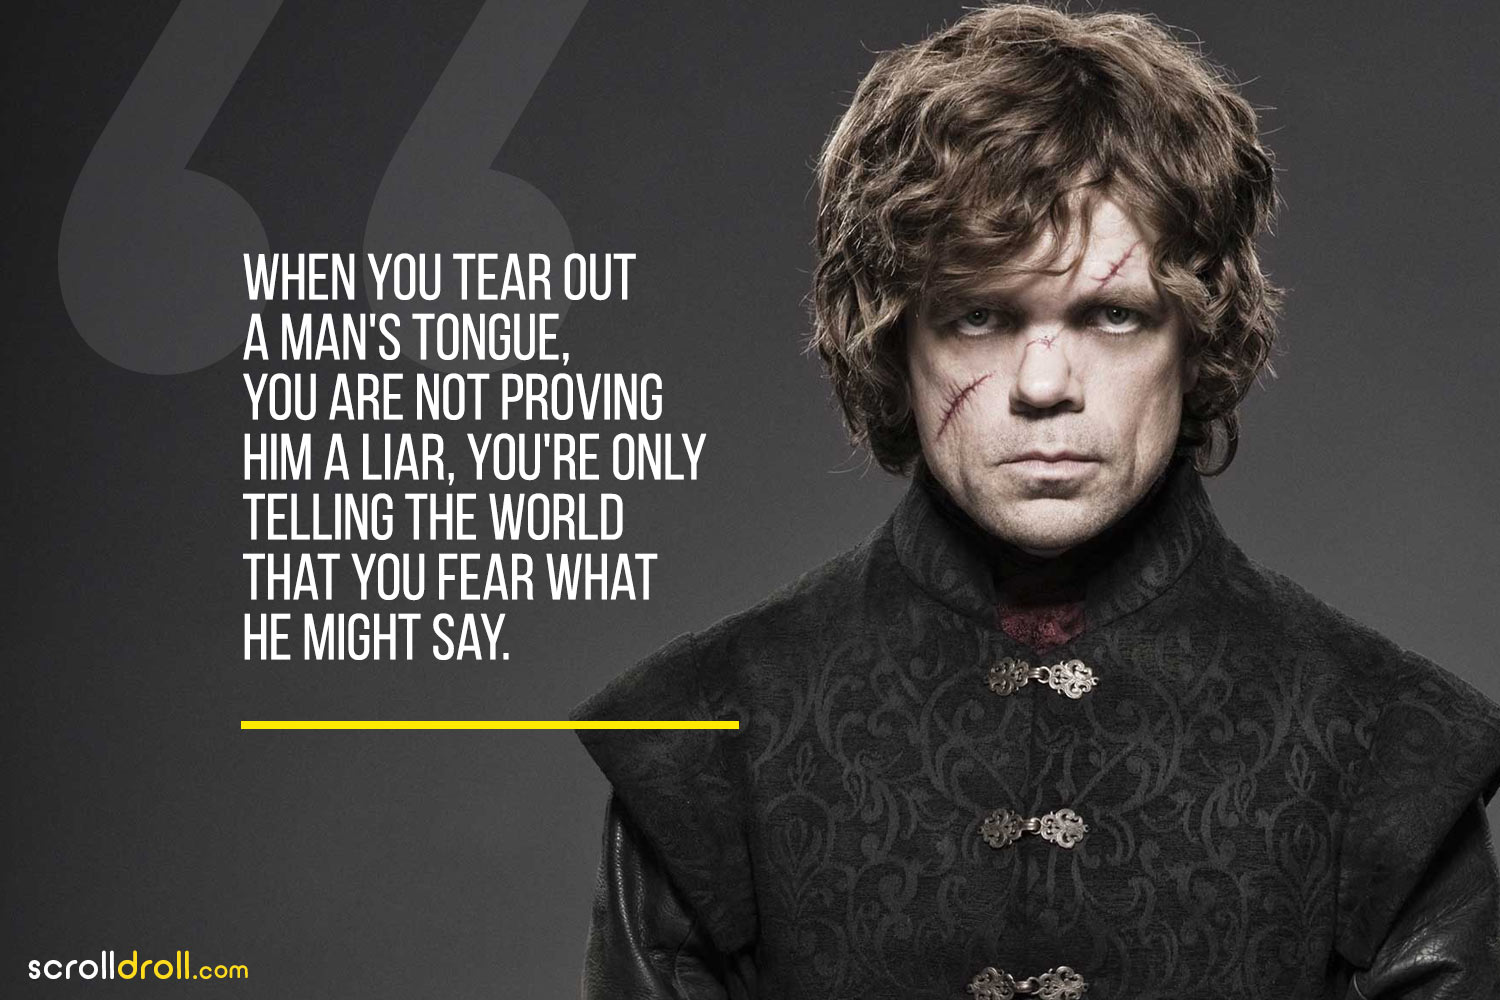 Tyrion-When you tear out a man's tounge, you are not proving him a liar, you're only telling the world that you fear what he might say